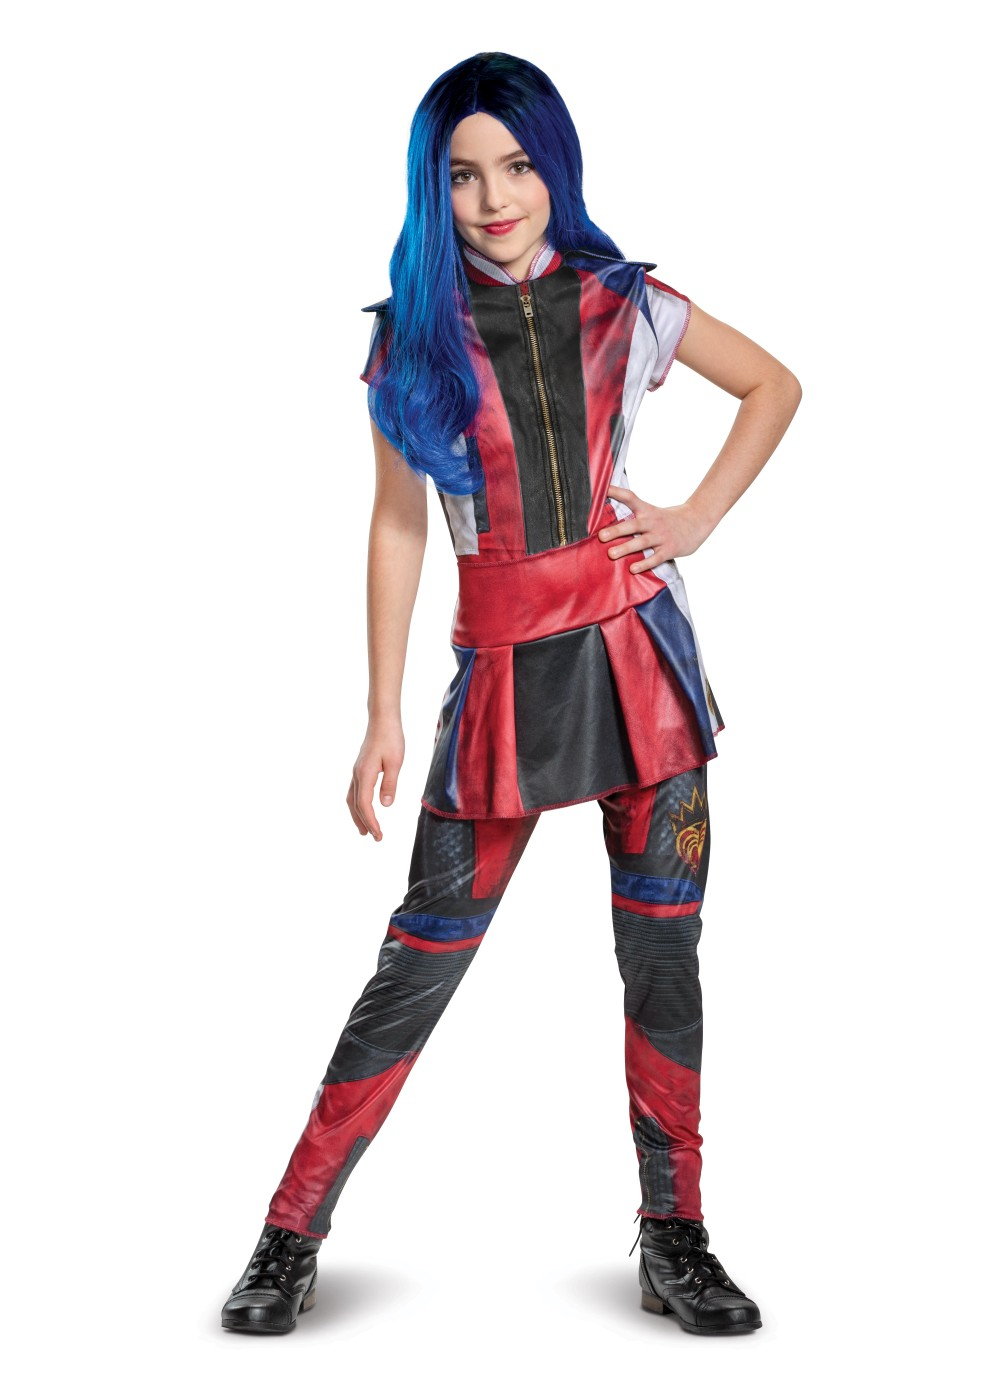 Kids Disney Evie Descendants 3 Classic Costume